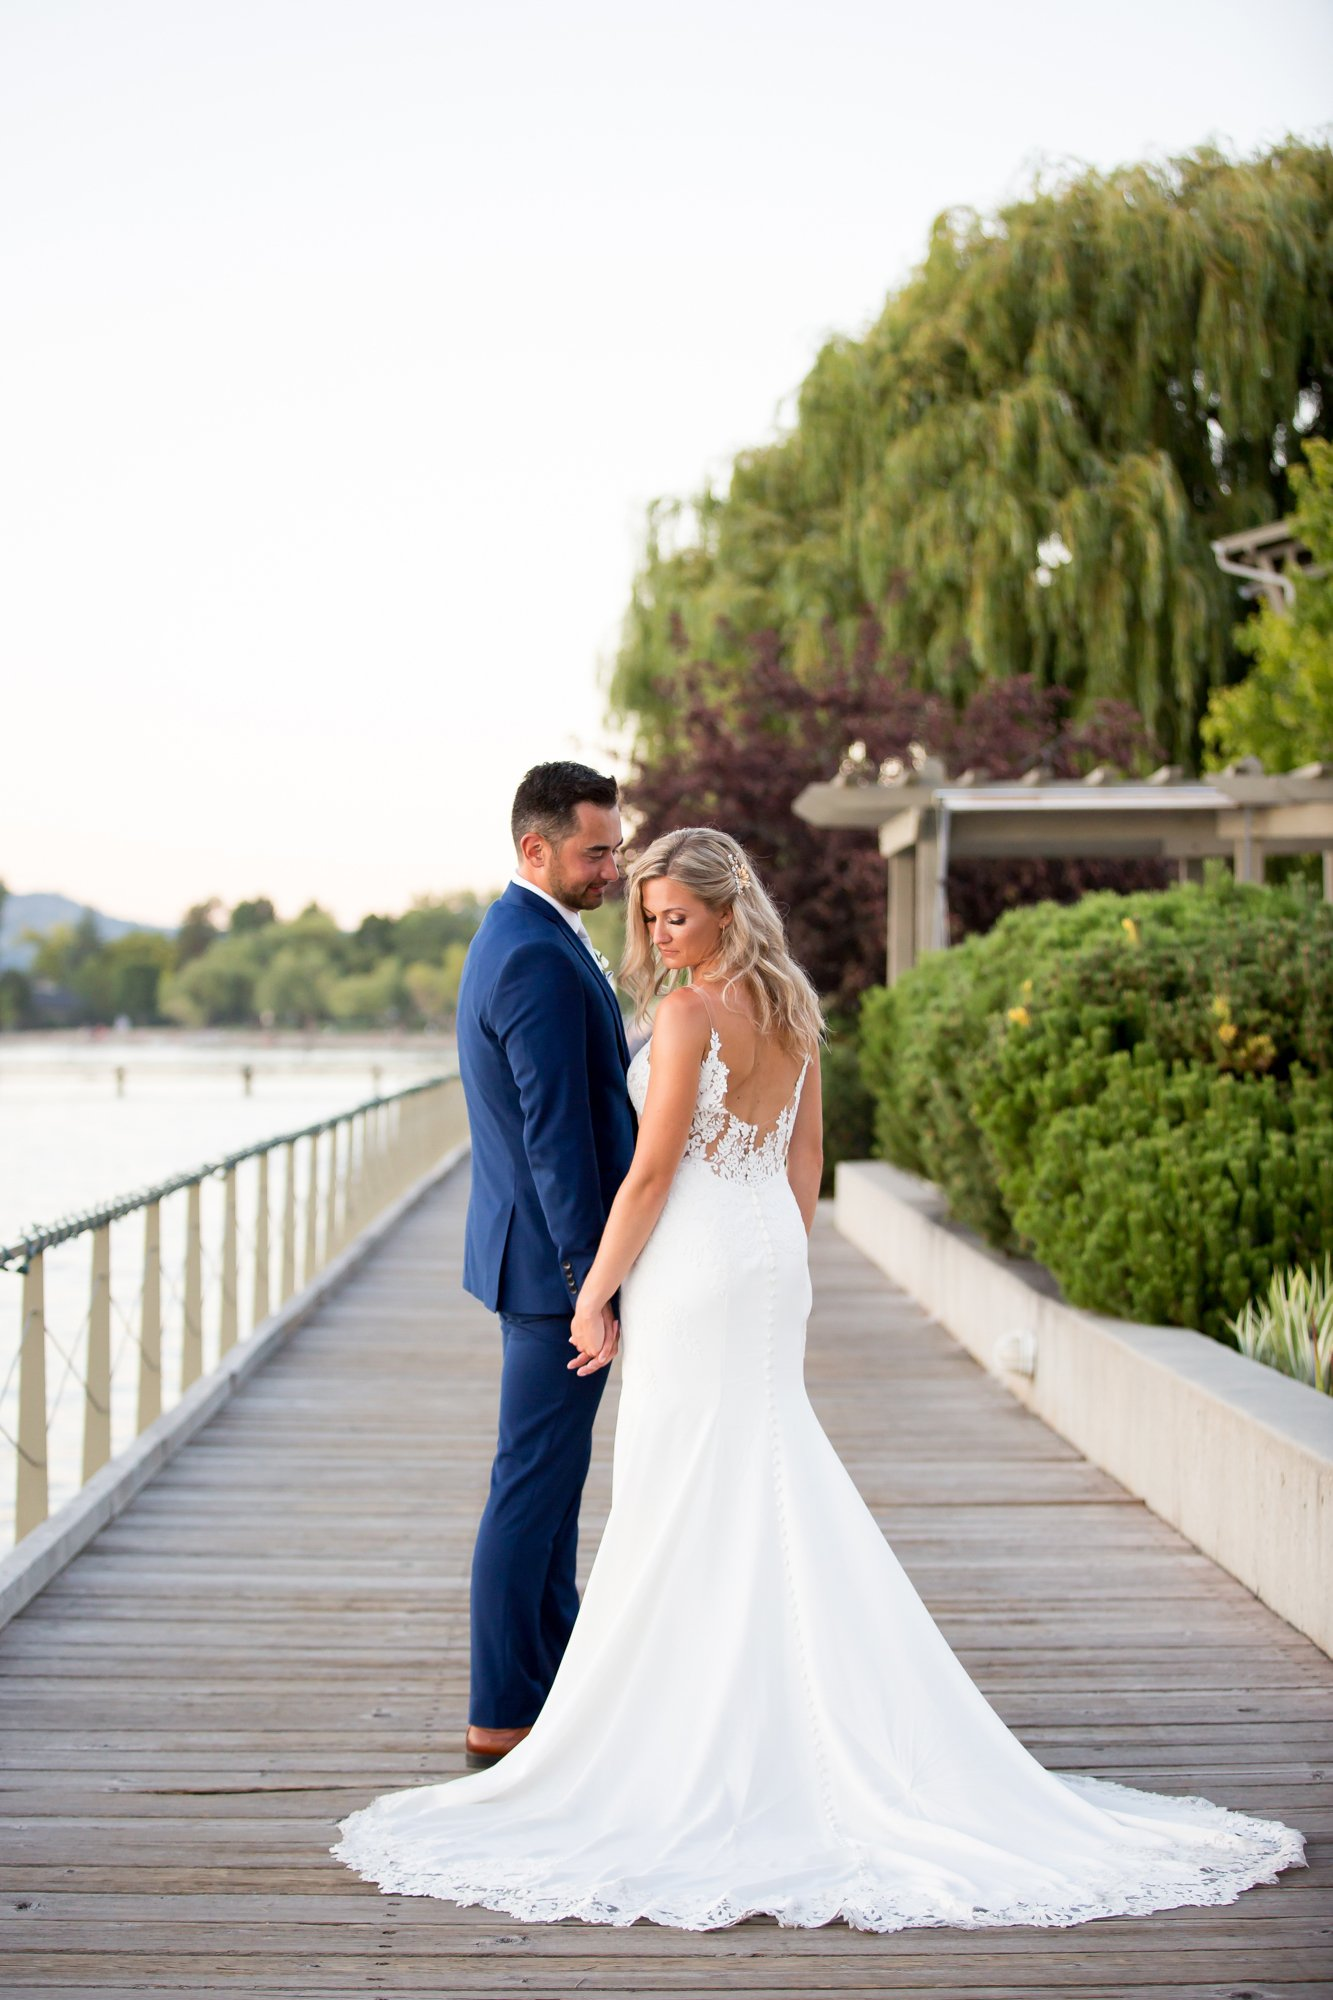 A couple standing together on a dock lakeside